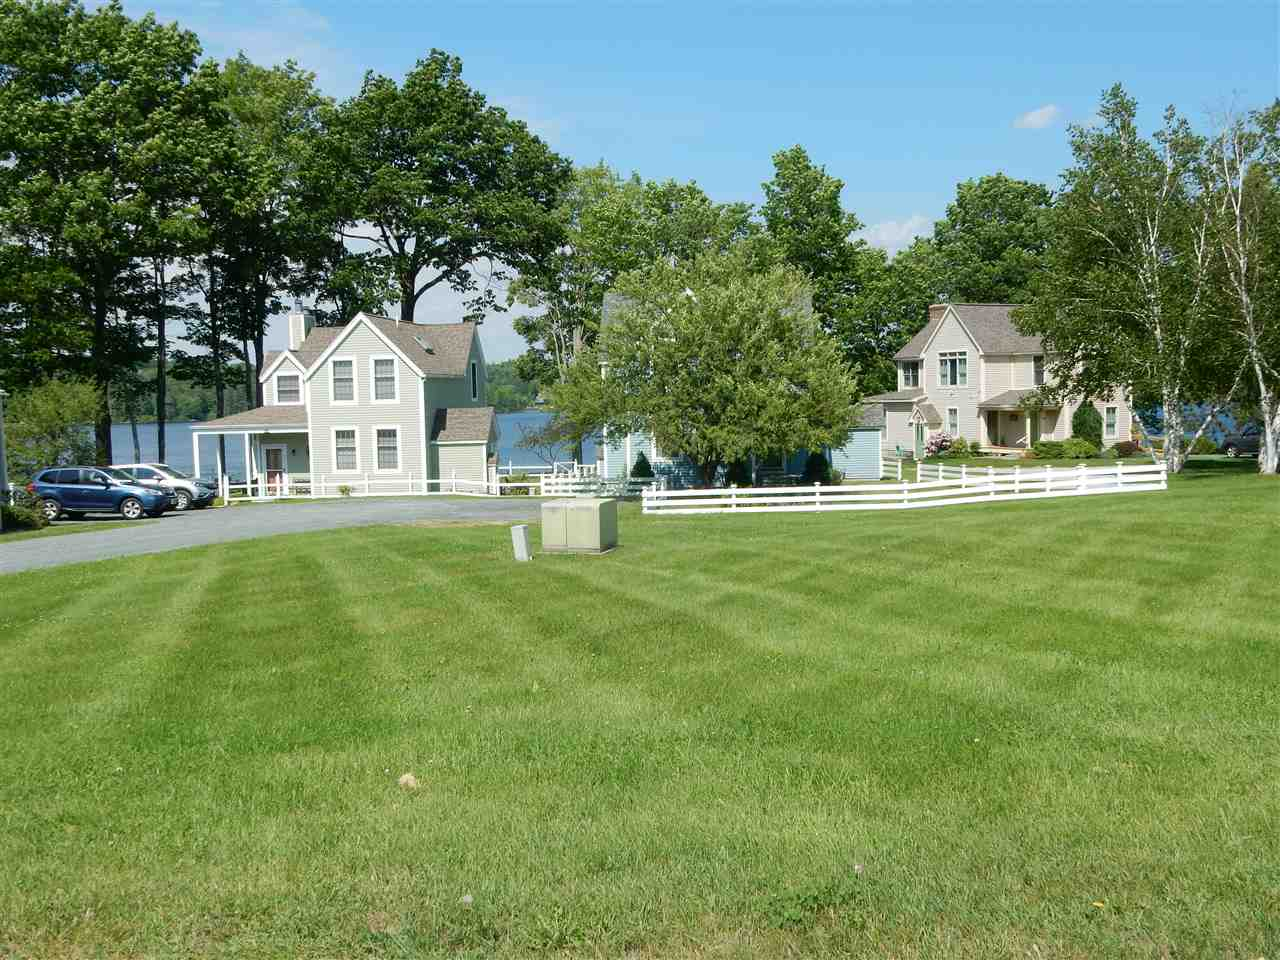 ENFIELD NHLAND  for sale $$75,000 | 0.1 Acres  | Price Per Acre $0